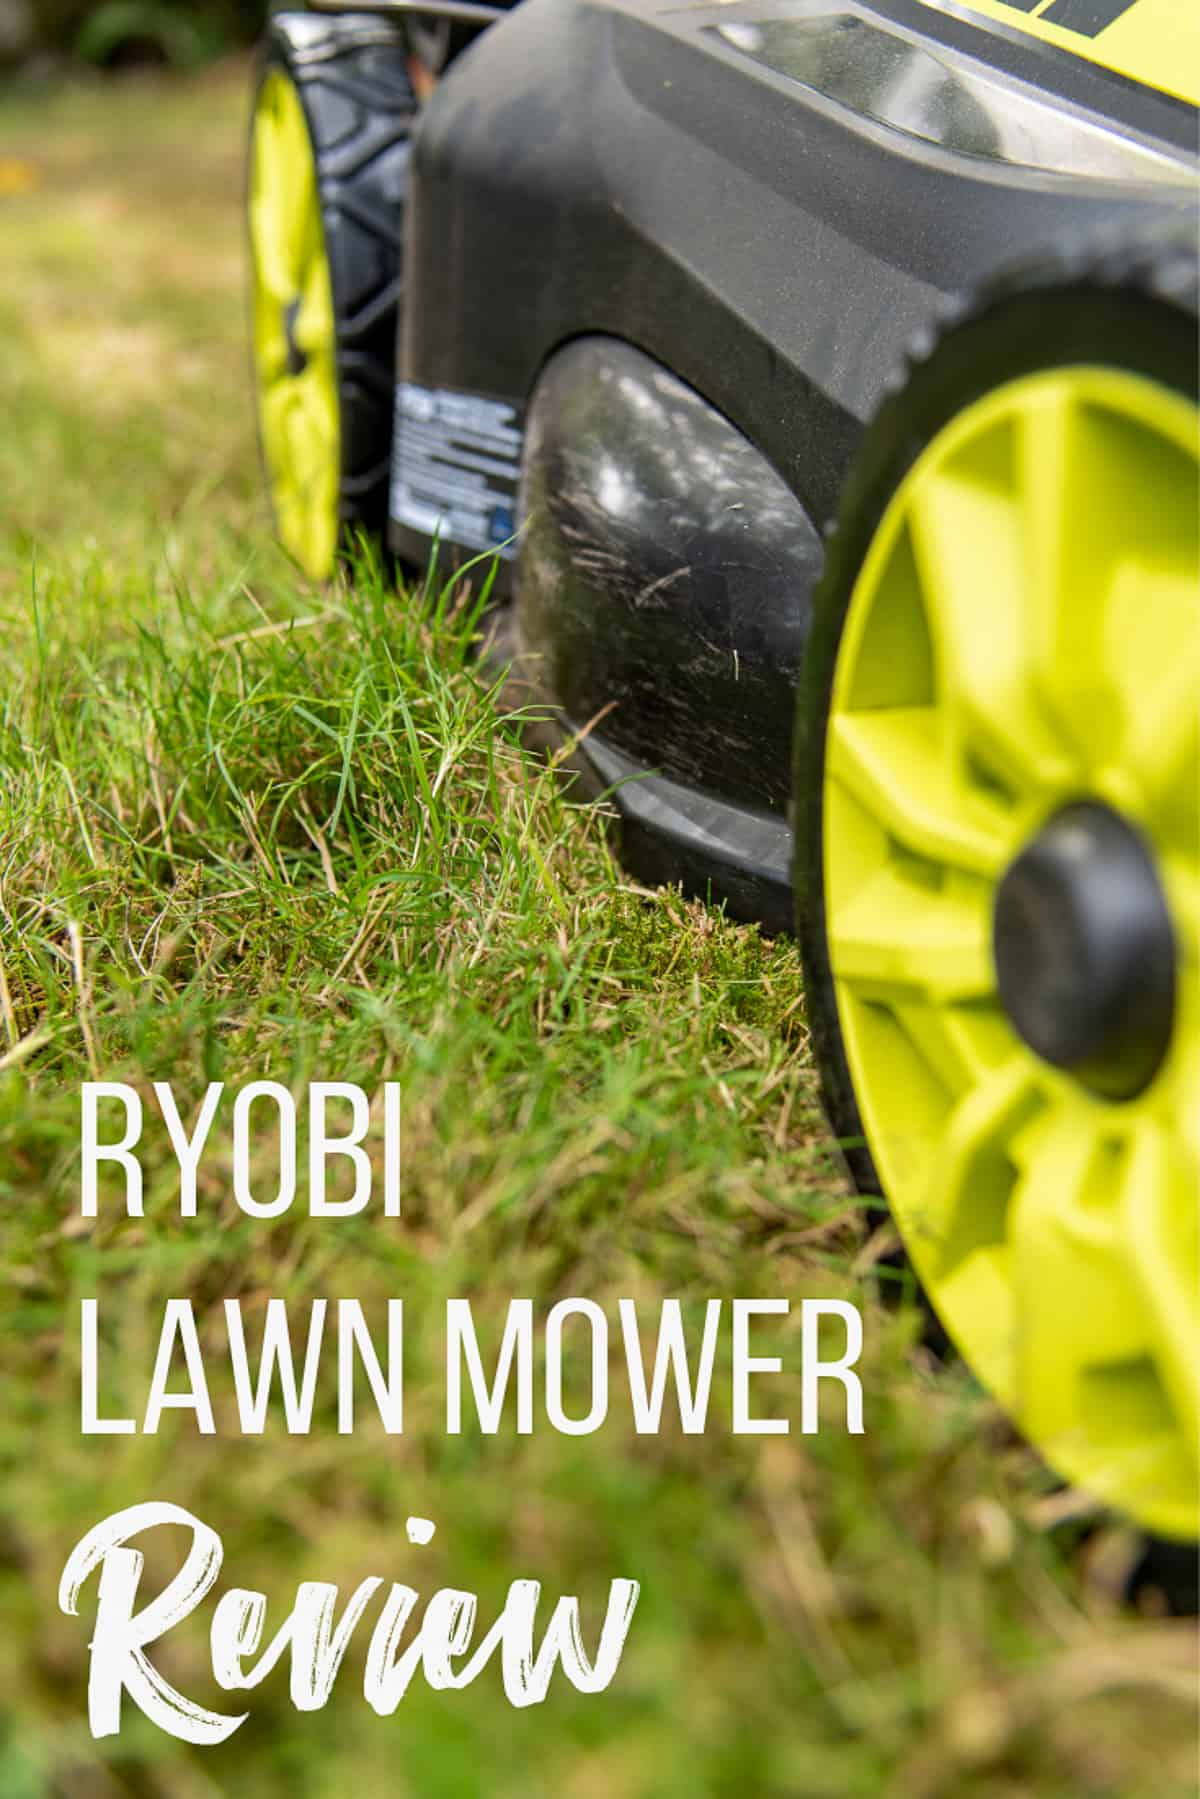 close up of Ryobi self propelled electric lawn mower with text overlay